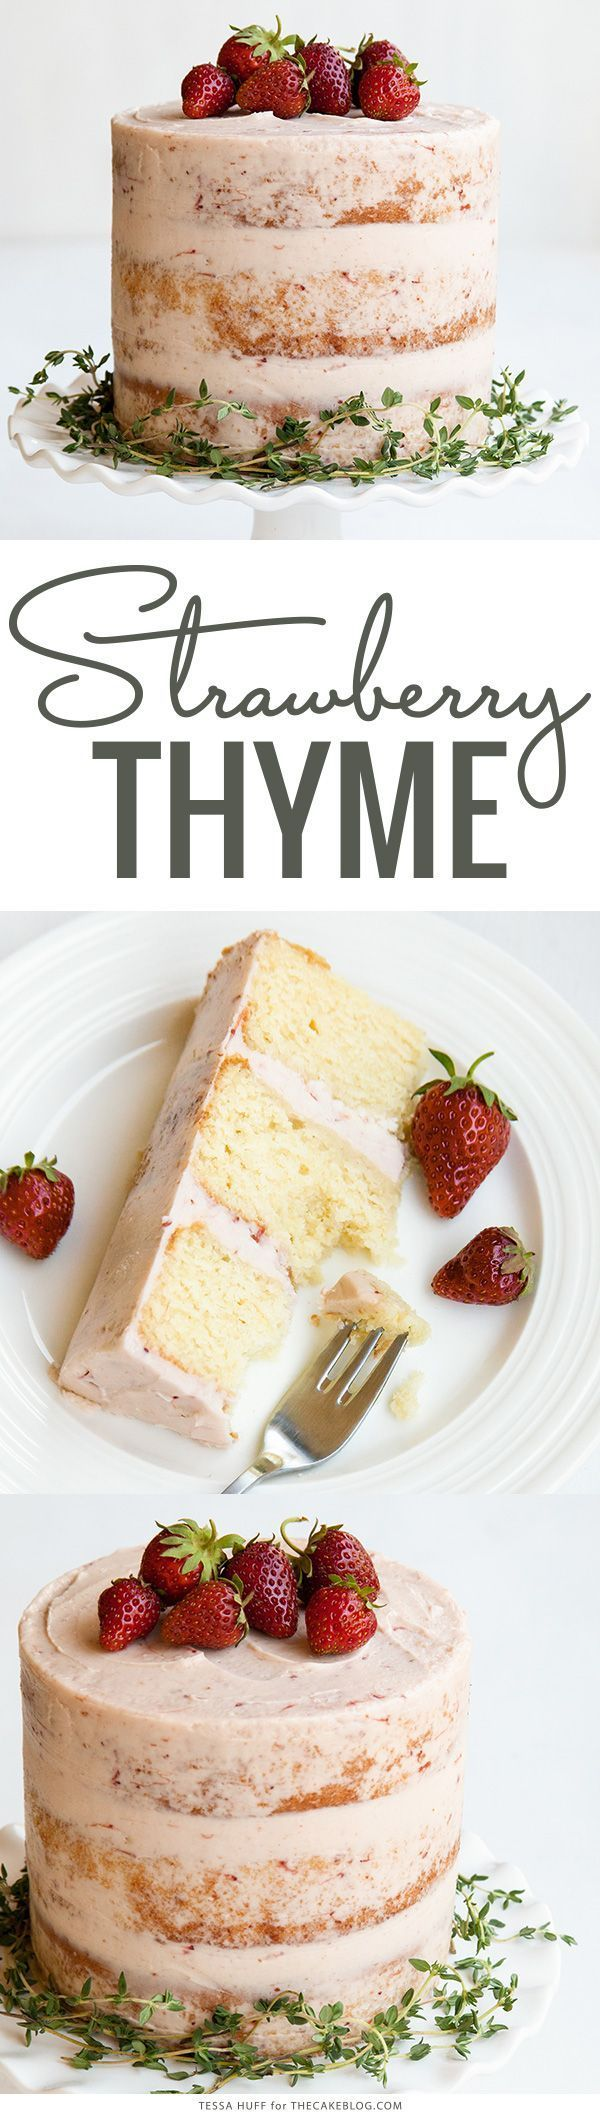 Strawberry Thyme Cake | by Tessa Huff for http://TheCakeBlog.com